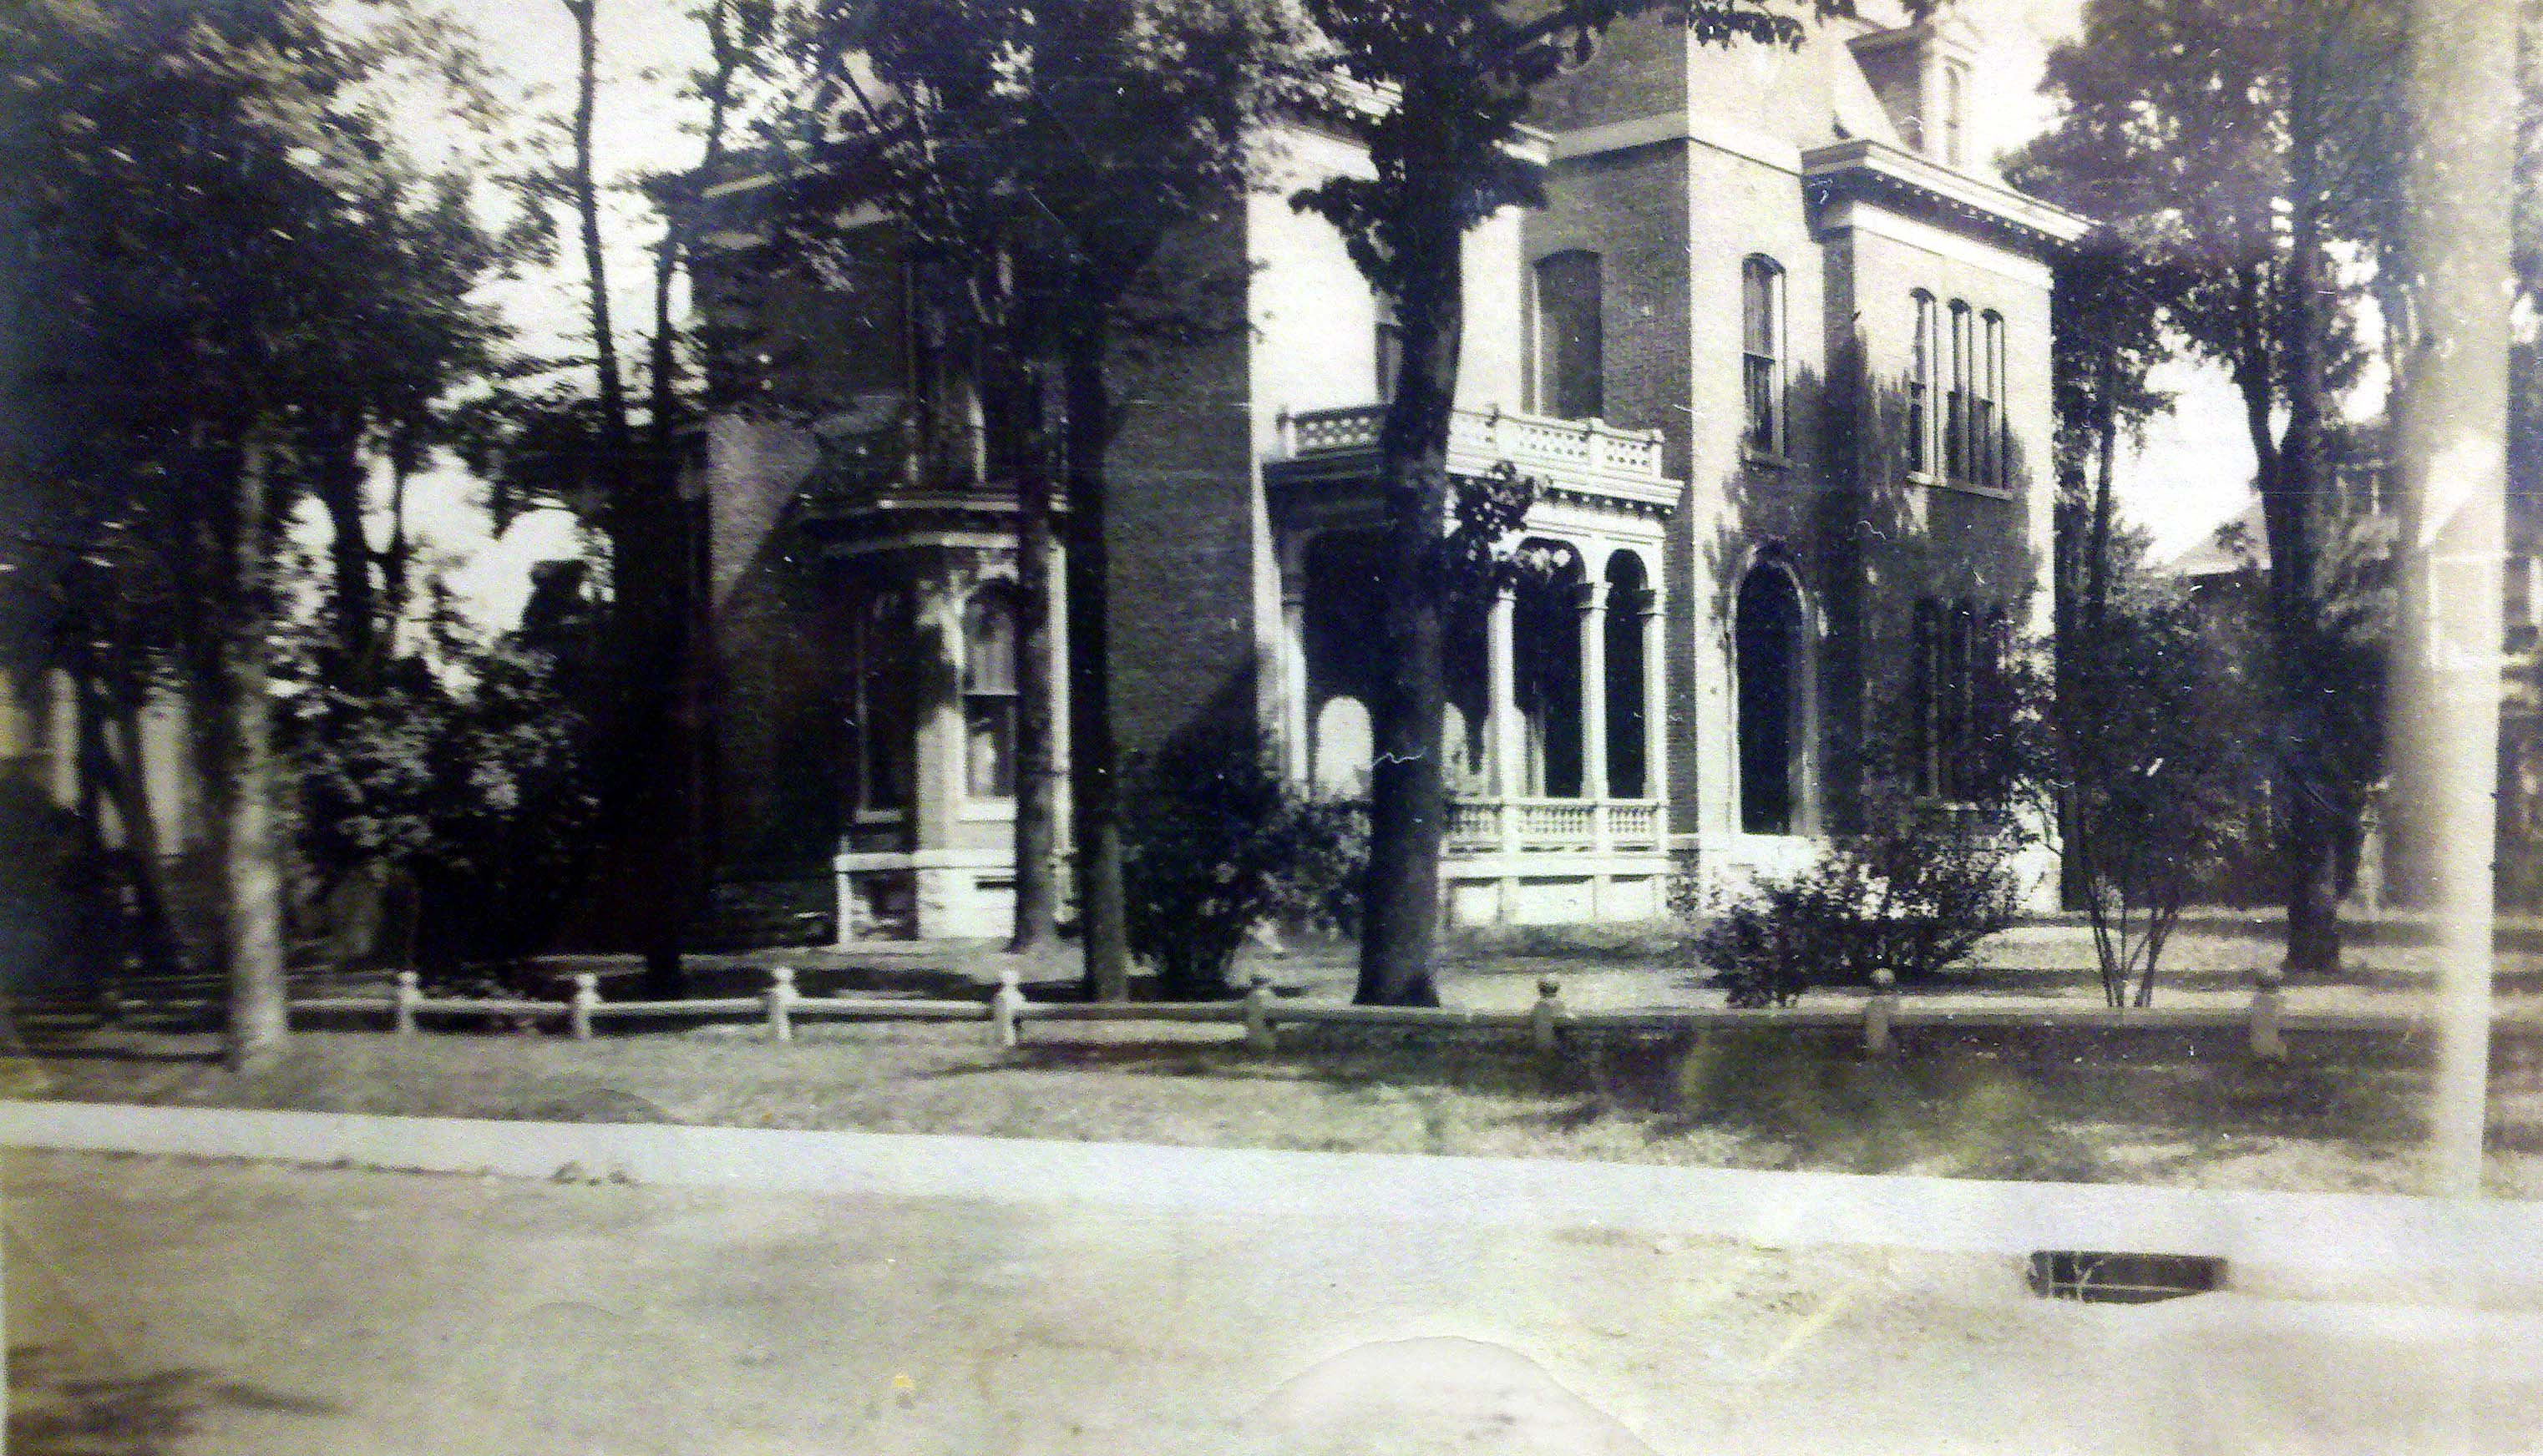 Early 20th Century photo